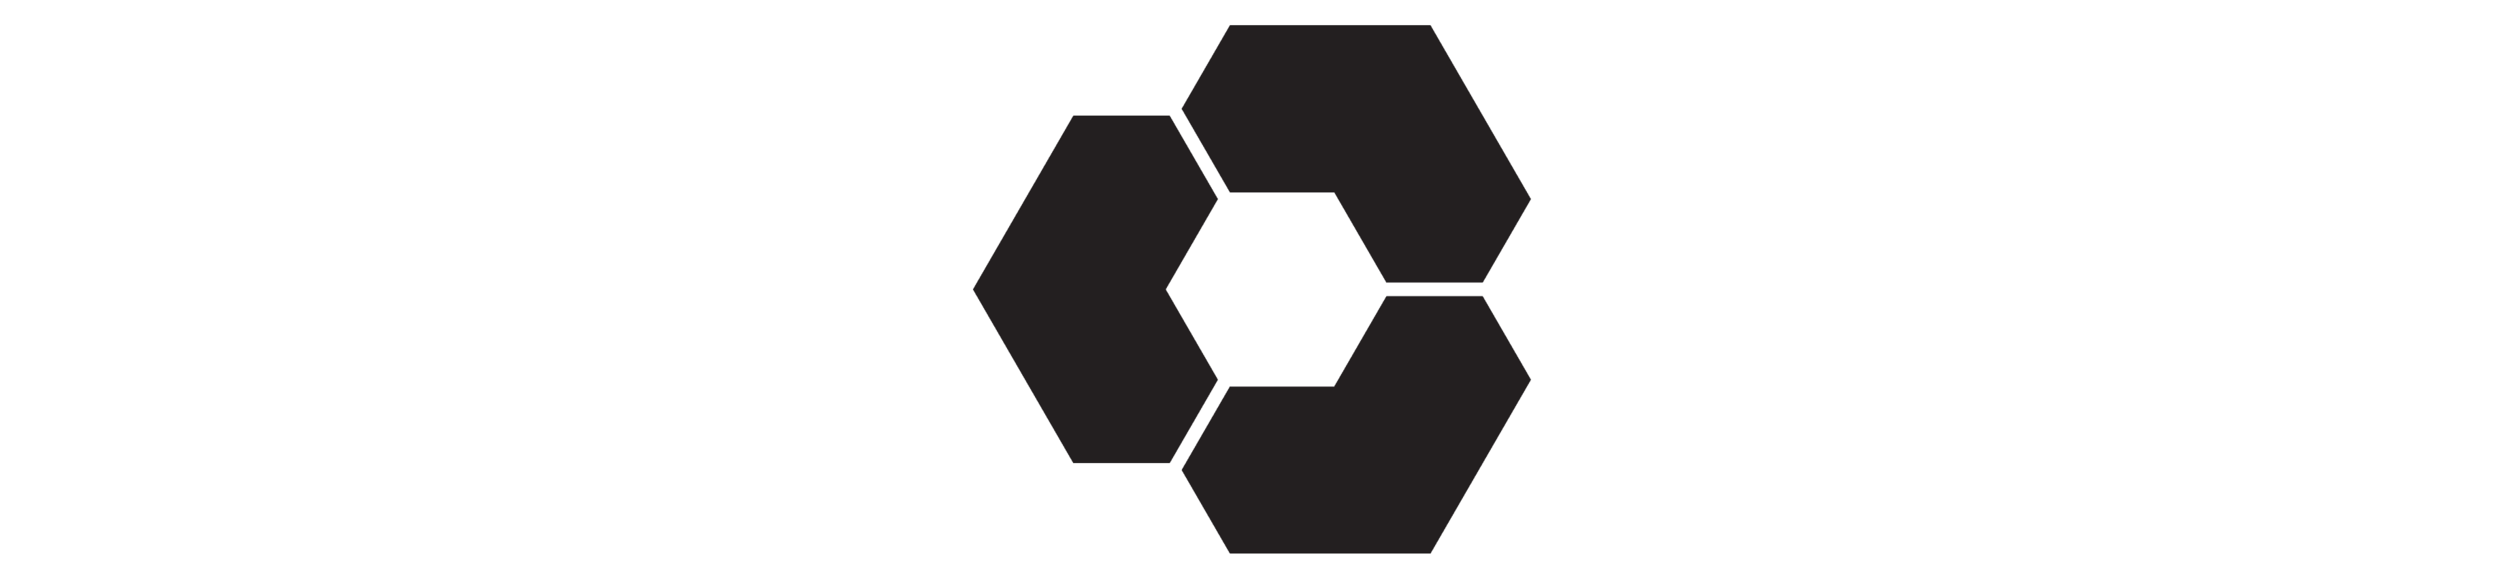 icon-Hex_patt_03.png